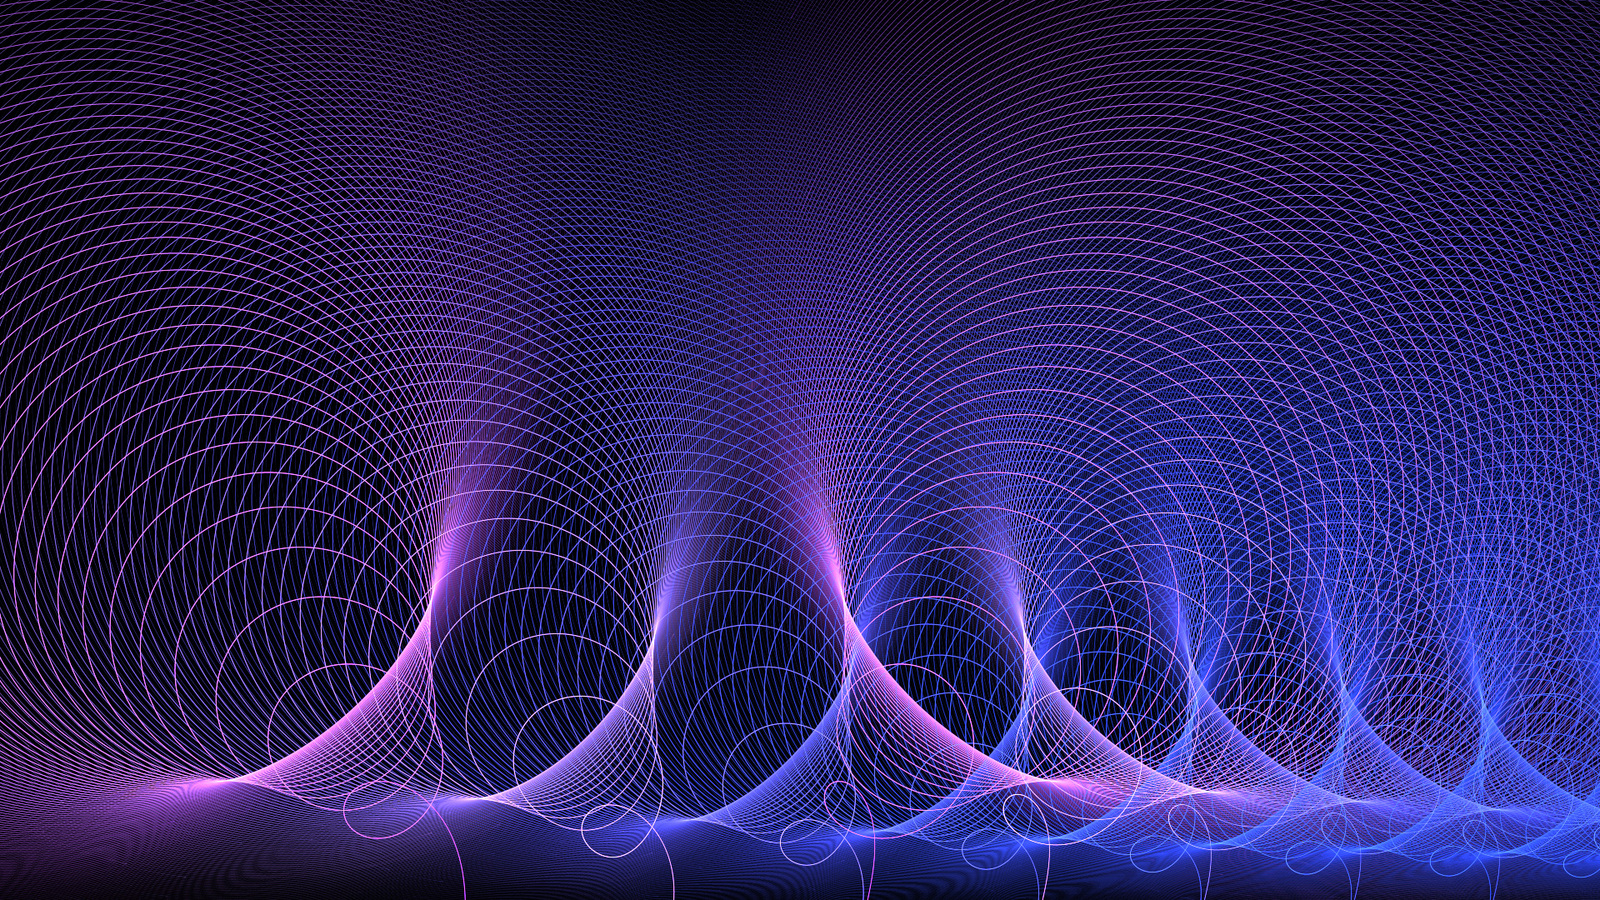 acoustic-waves-abstract-purple-artistic-qm.jpg